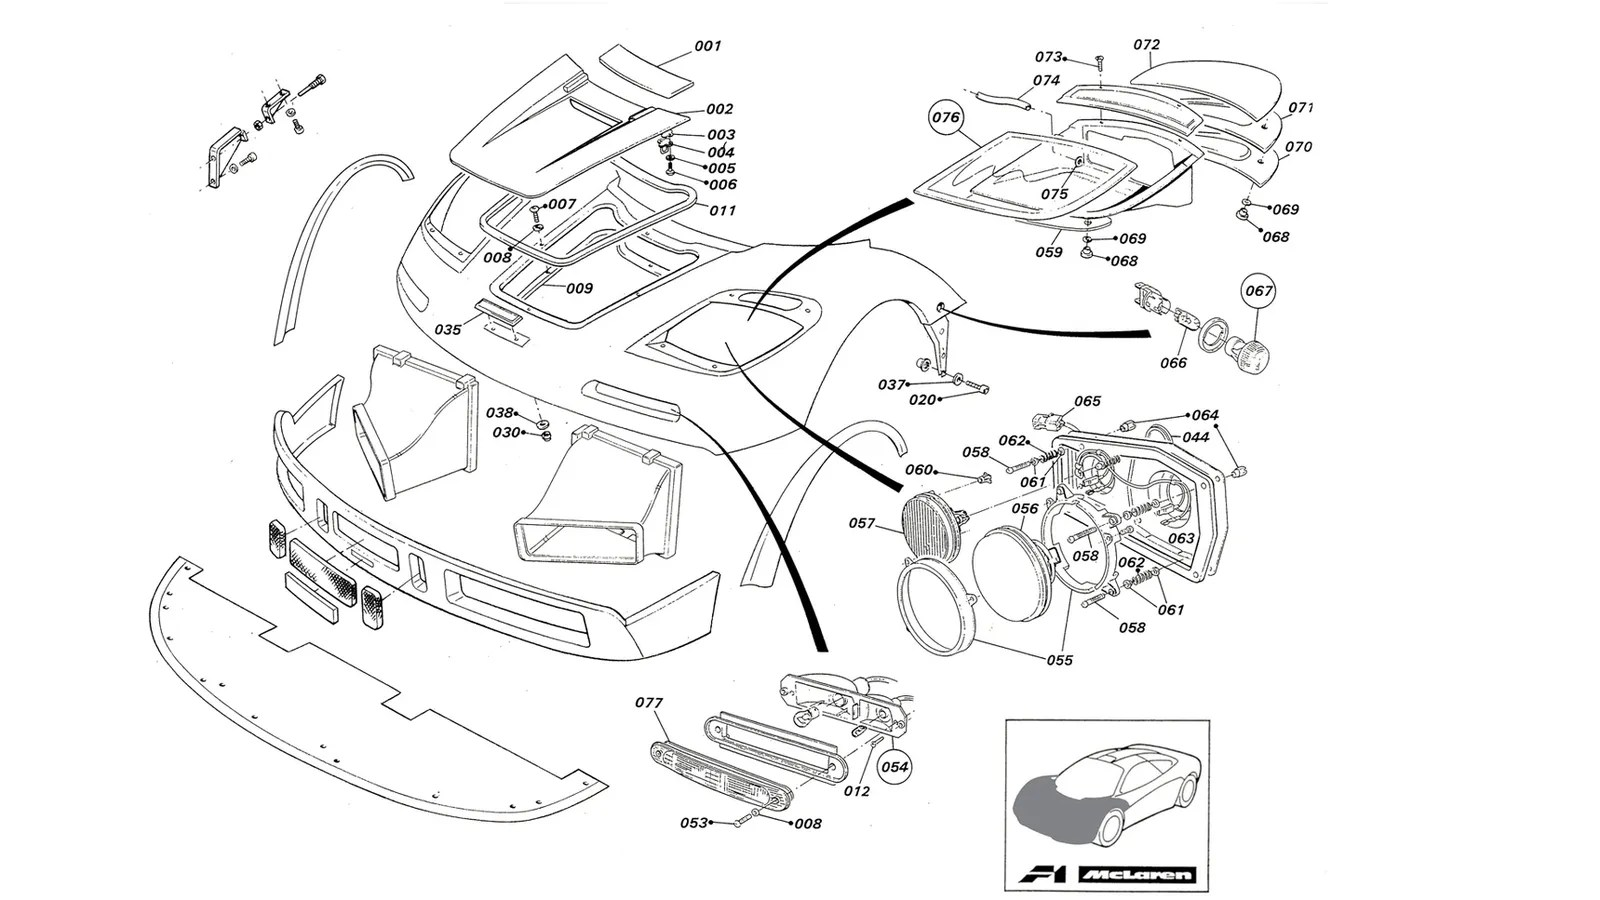 This Workshop Manual Comes Handy If You Have A Mclaren F1 Gtr